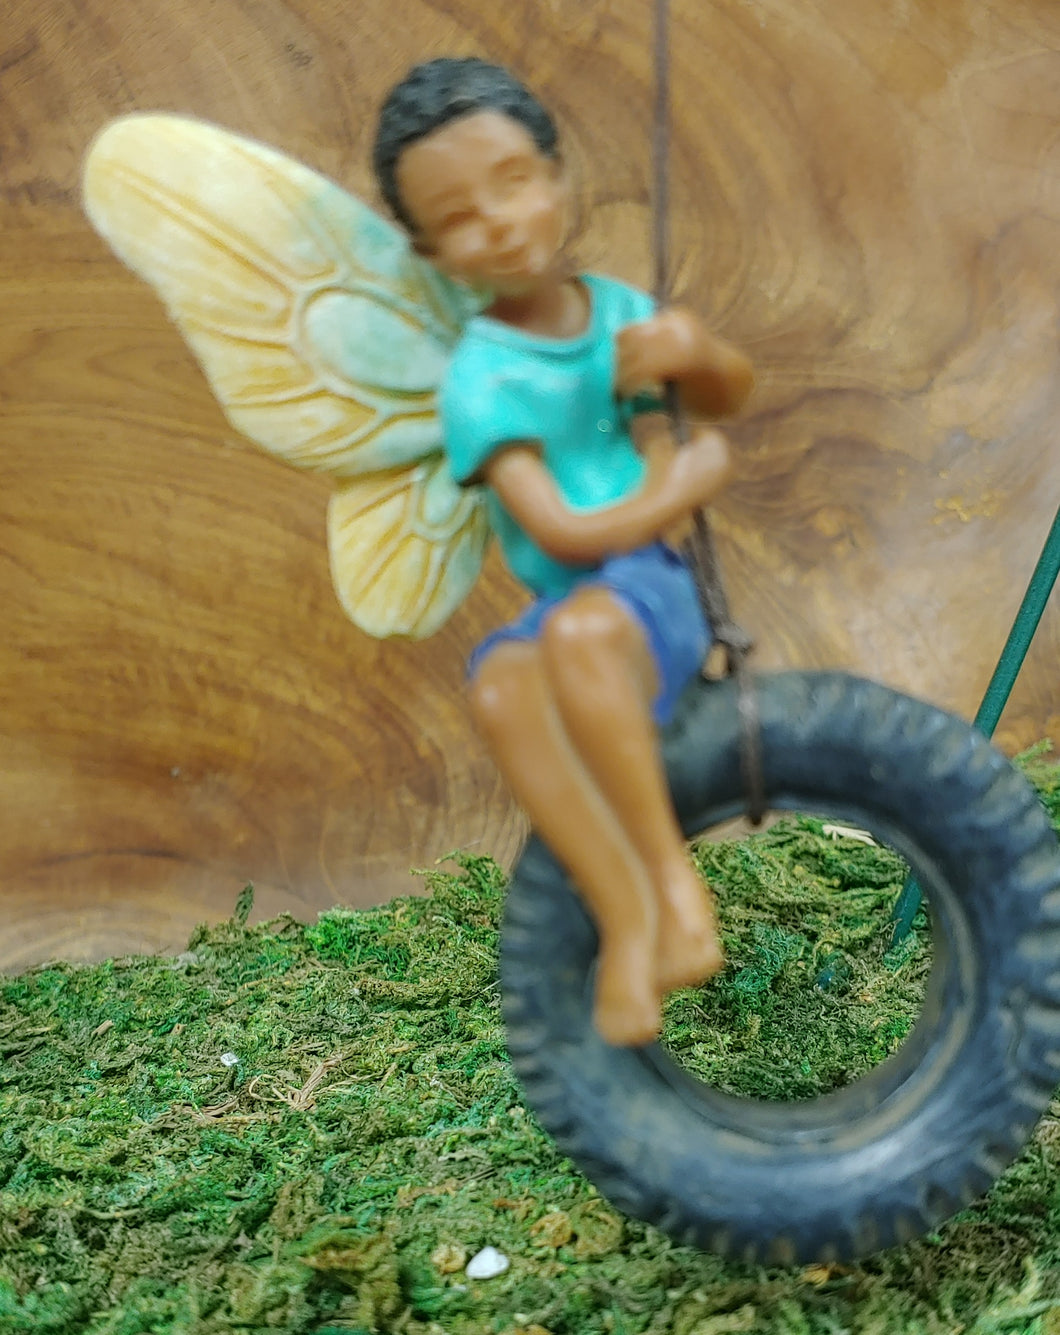 Fairy Garden  - Boy in a fun Tire Swing  - MG254